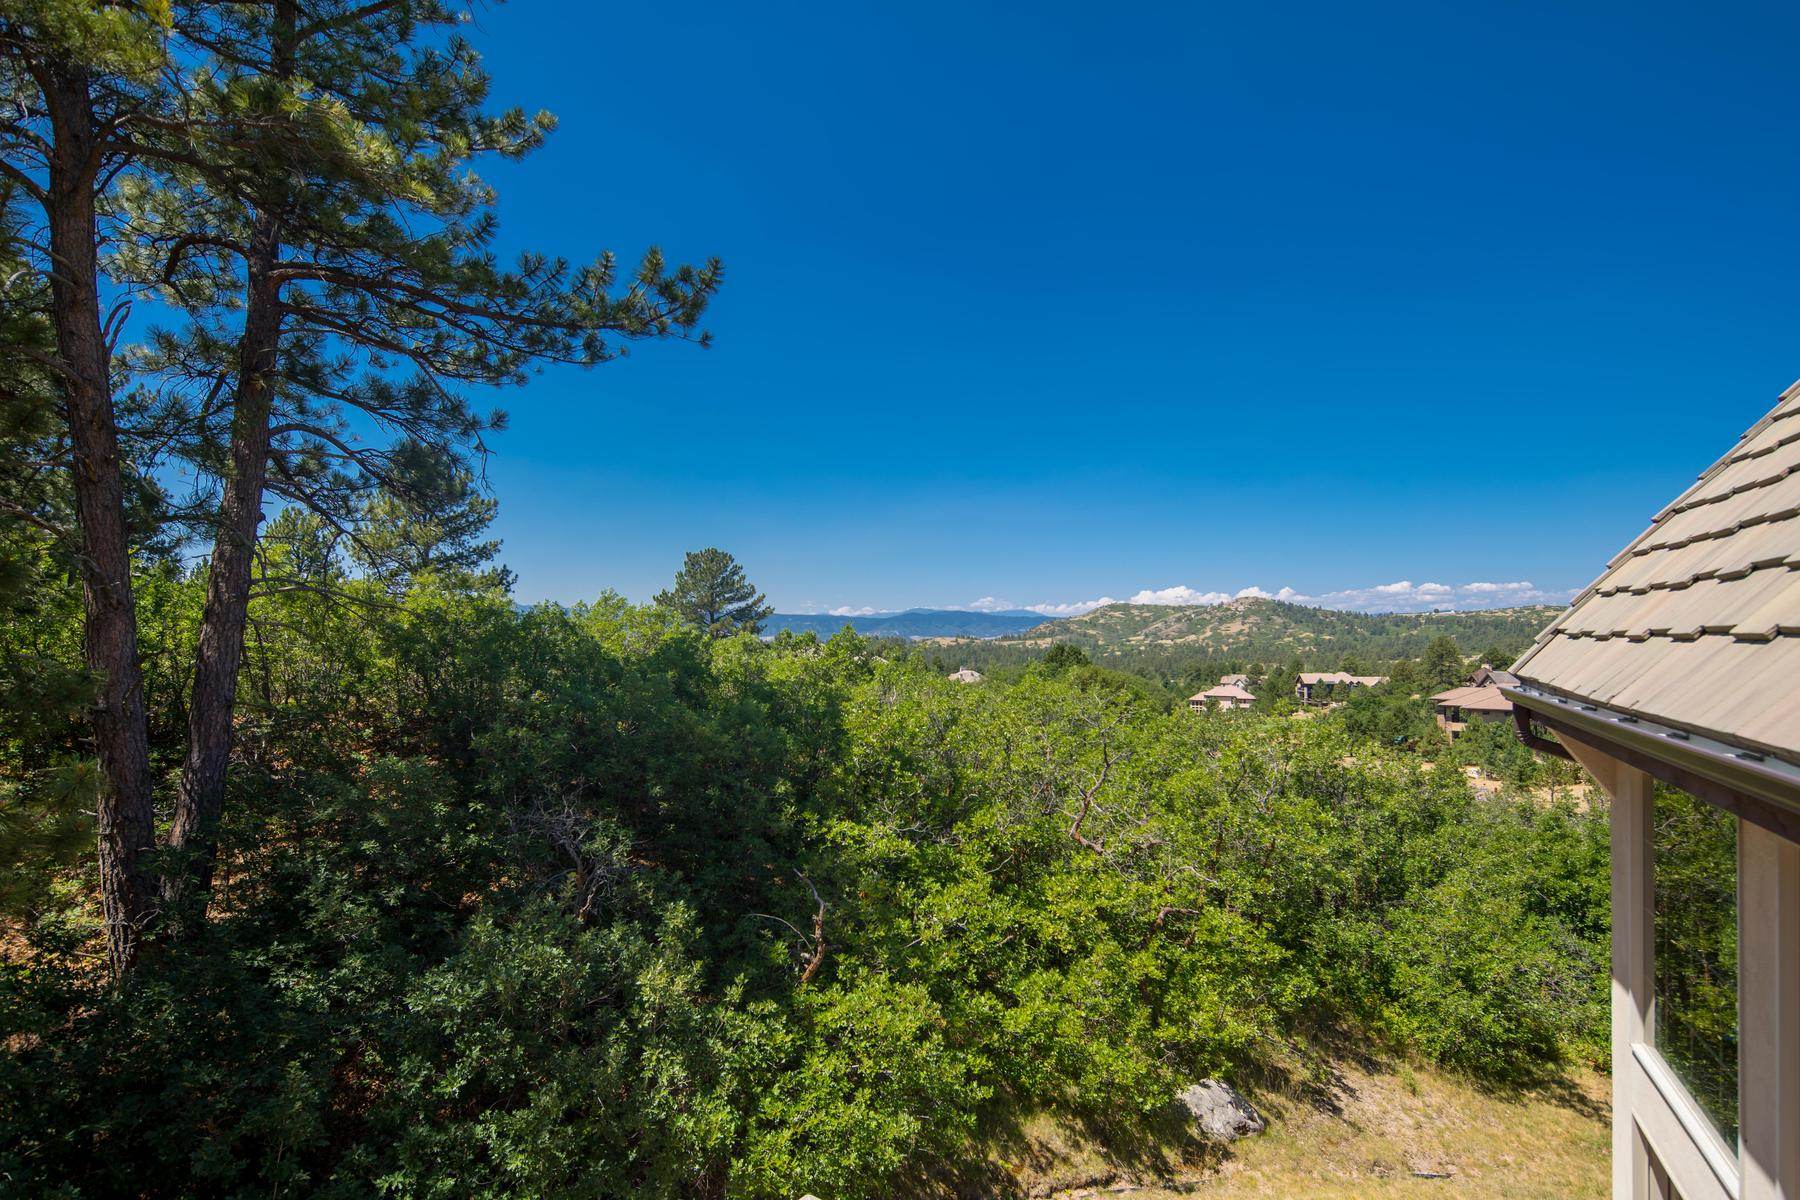 Additional photo for property listing at 1041 Meteor Pl 1041 Meteor Pl Castle Rock, Colorado 80108 United States